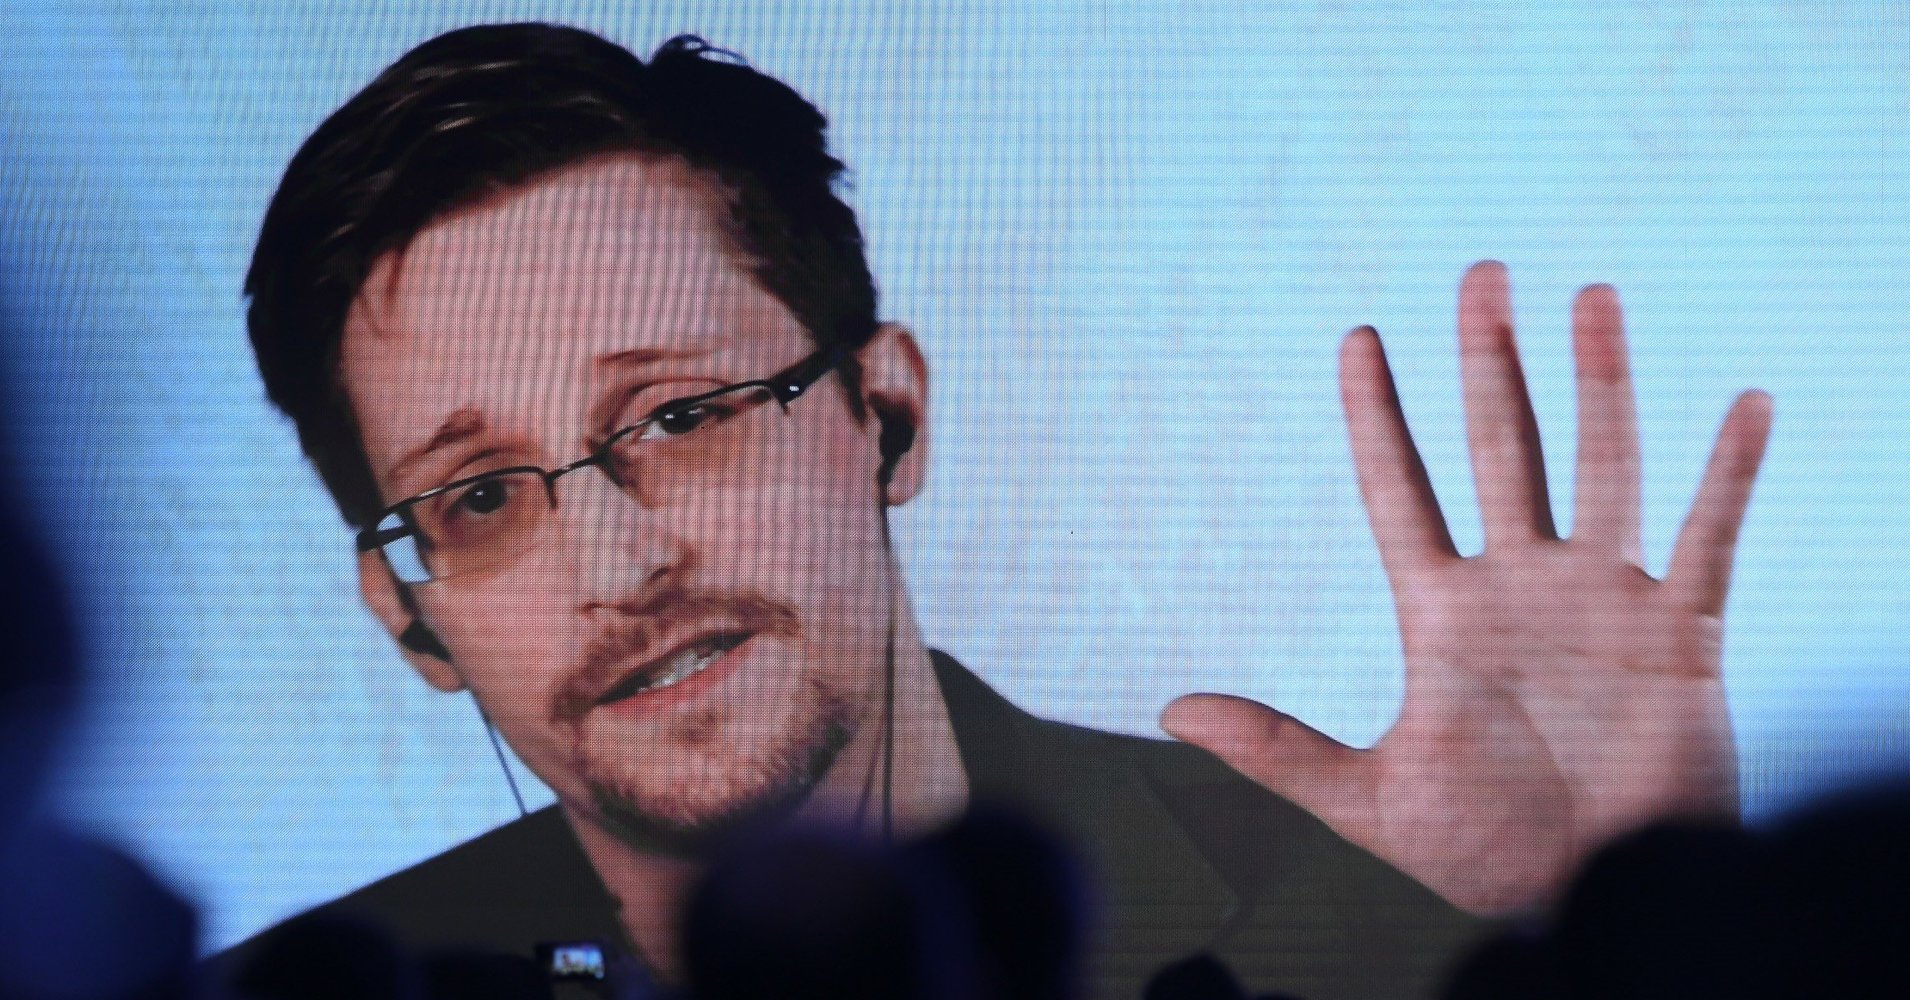 """ISTANBUL, TURKEY - NOVEMBER 21: Former U.S. National Security Agency contractor Edward Snowden delivers a speech by a video conference during a session titled """"How to solve the next generation of Privacy & Security Dillemas"""" within Shield 2017 Cyber Security Conference at Ciragan Palace in Istanbul, Turkey on November 21, 2017. (Photo by Arif Hudaverdi Yaman/Anadolu Agency/Getty Images)"""